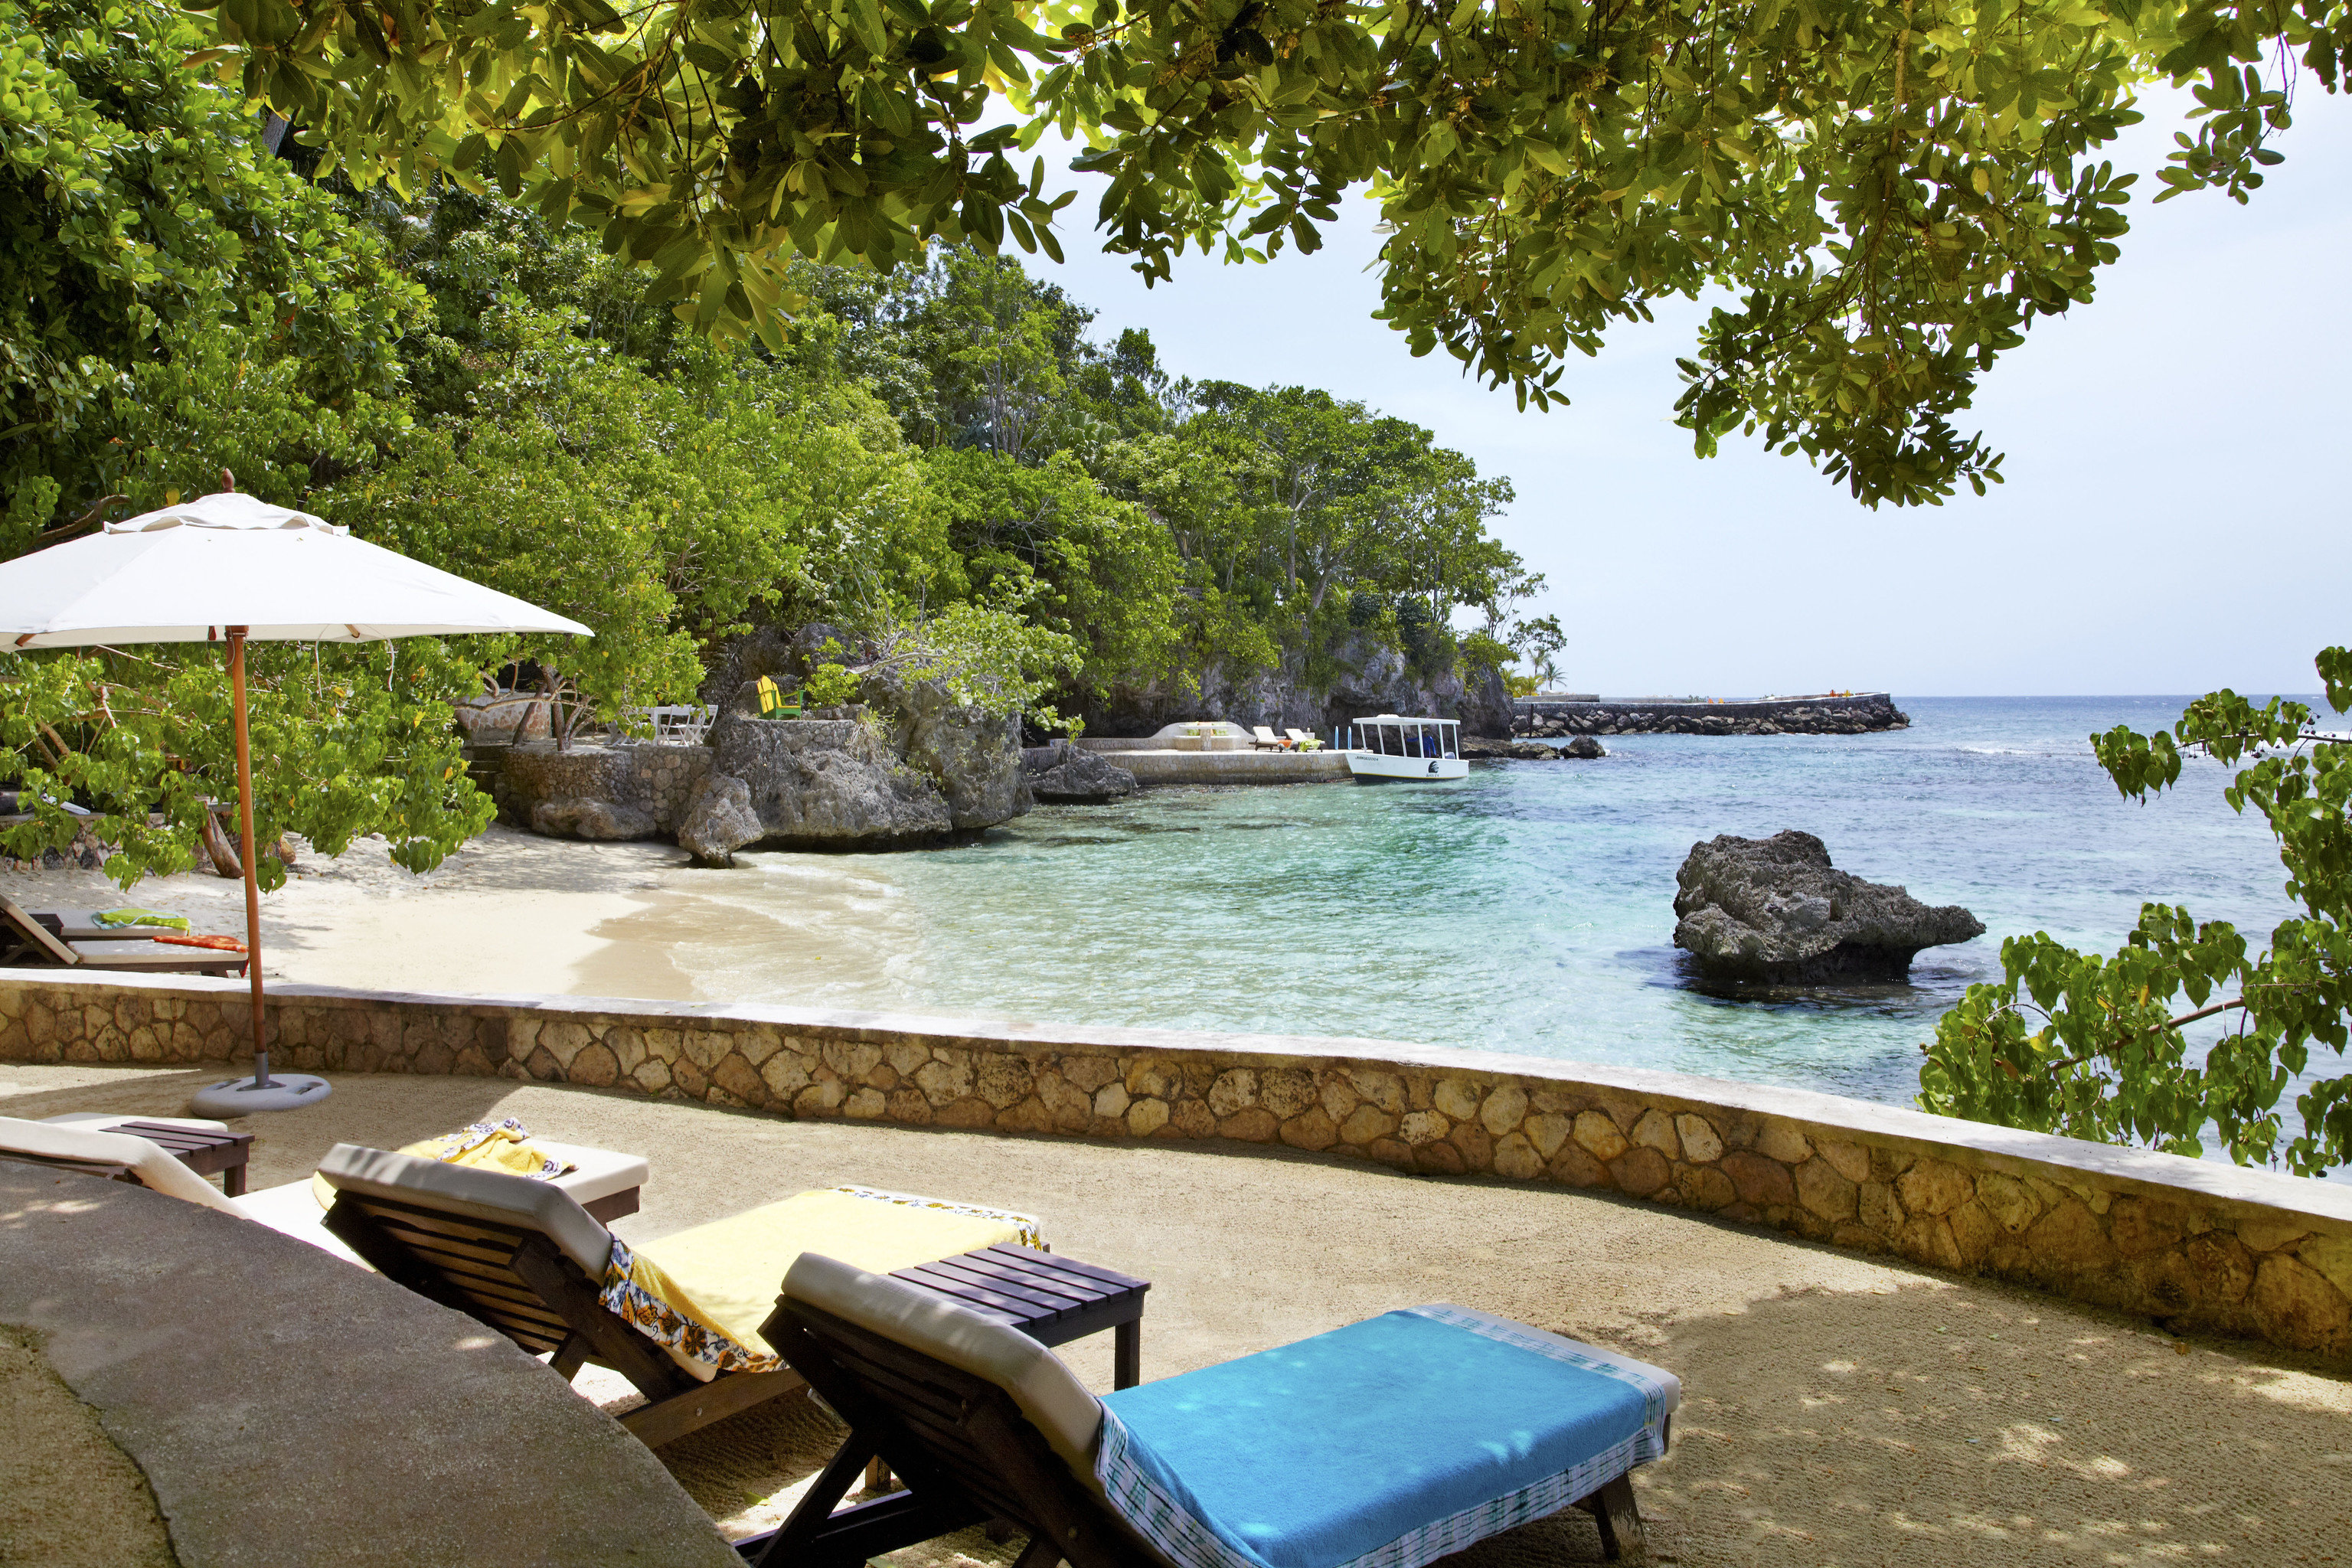 tree water Resort leisure tropics Sea Beach outdoor furniture swimming pool sunlounger arecales caribbean landscape Villa cottage plant